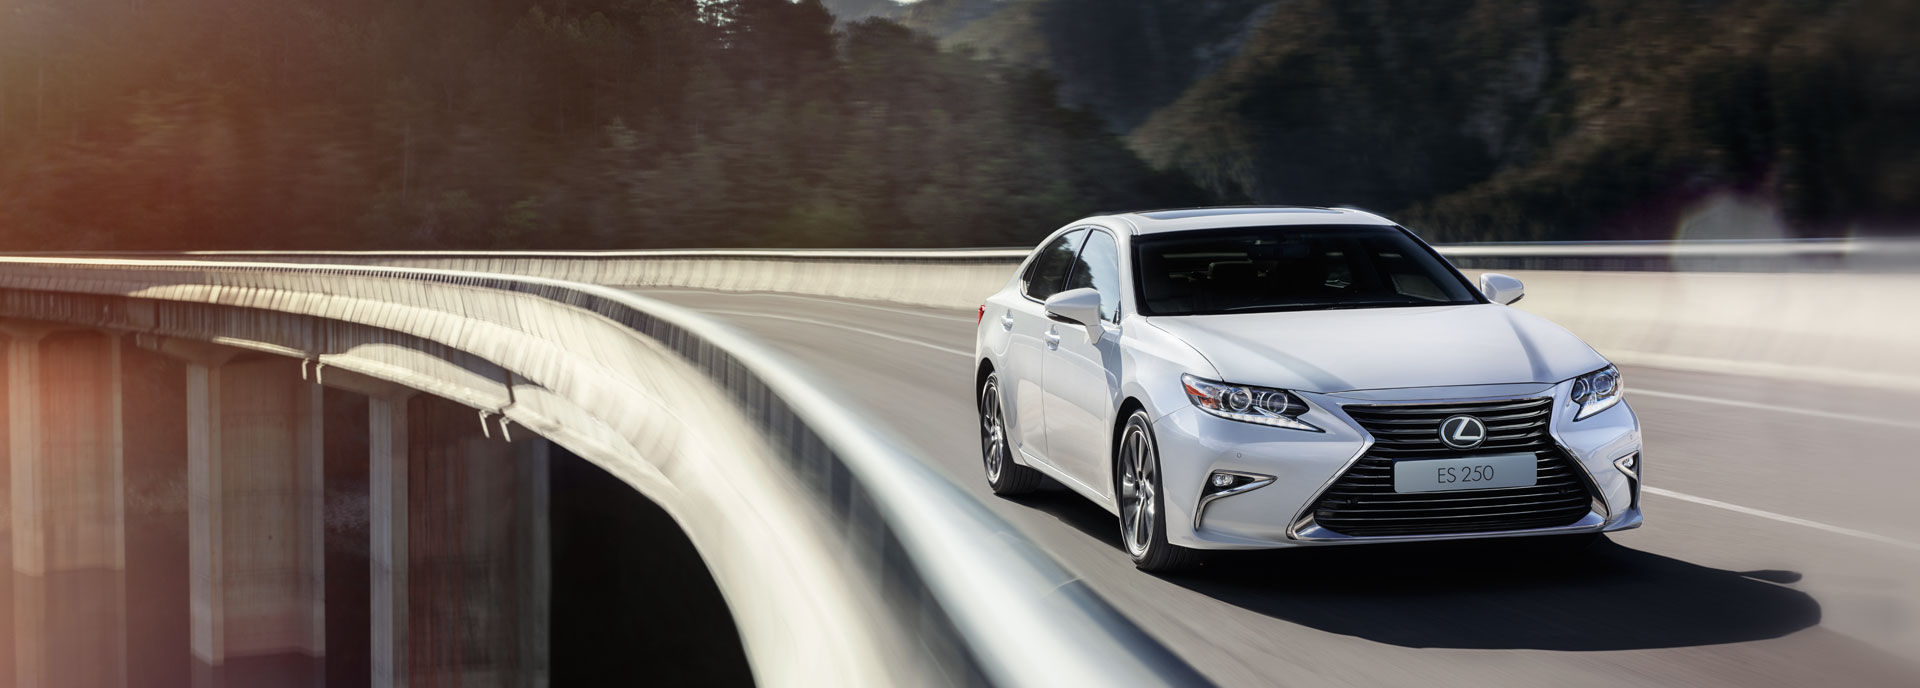 lexus-es-250-mc-already-in-ukraine-header